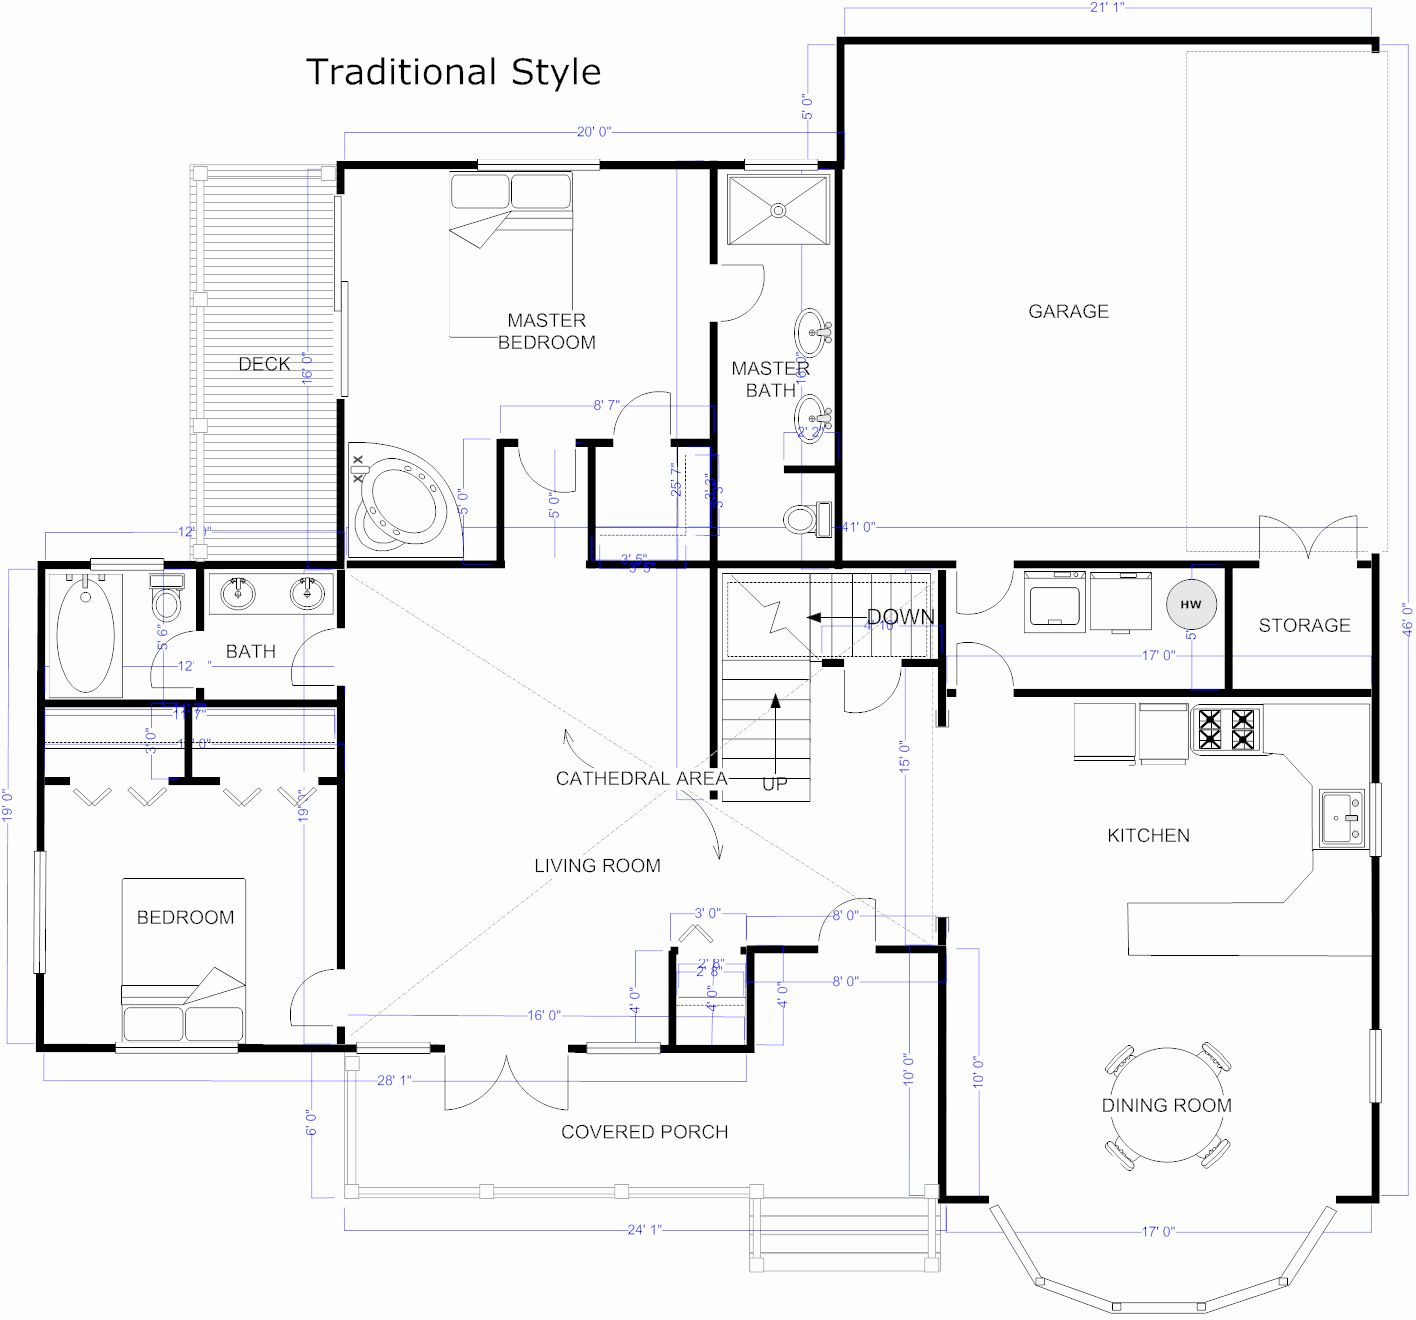 Floor Plan Template Free Lovely Floor Plan Maker Draw Floor Plans With Floor Plan Temp In 2020 Architectural House Plans Home Design Software House Architecture Design